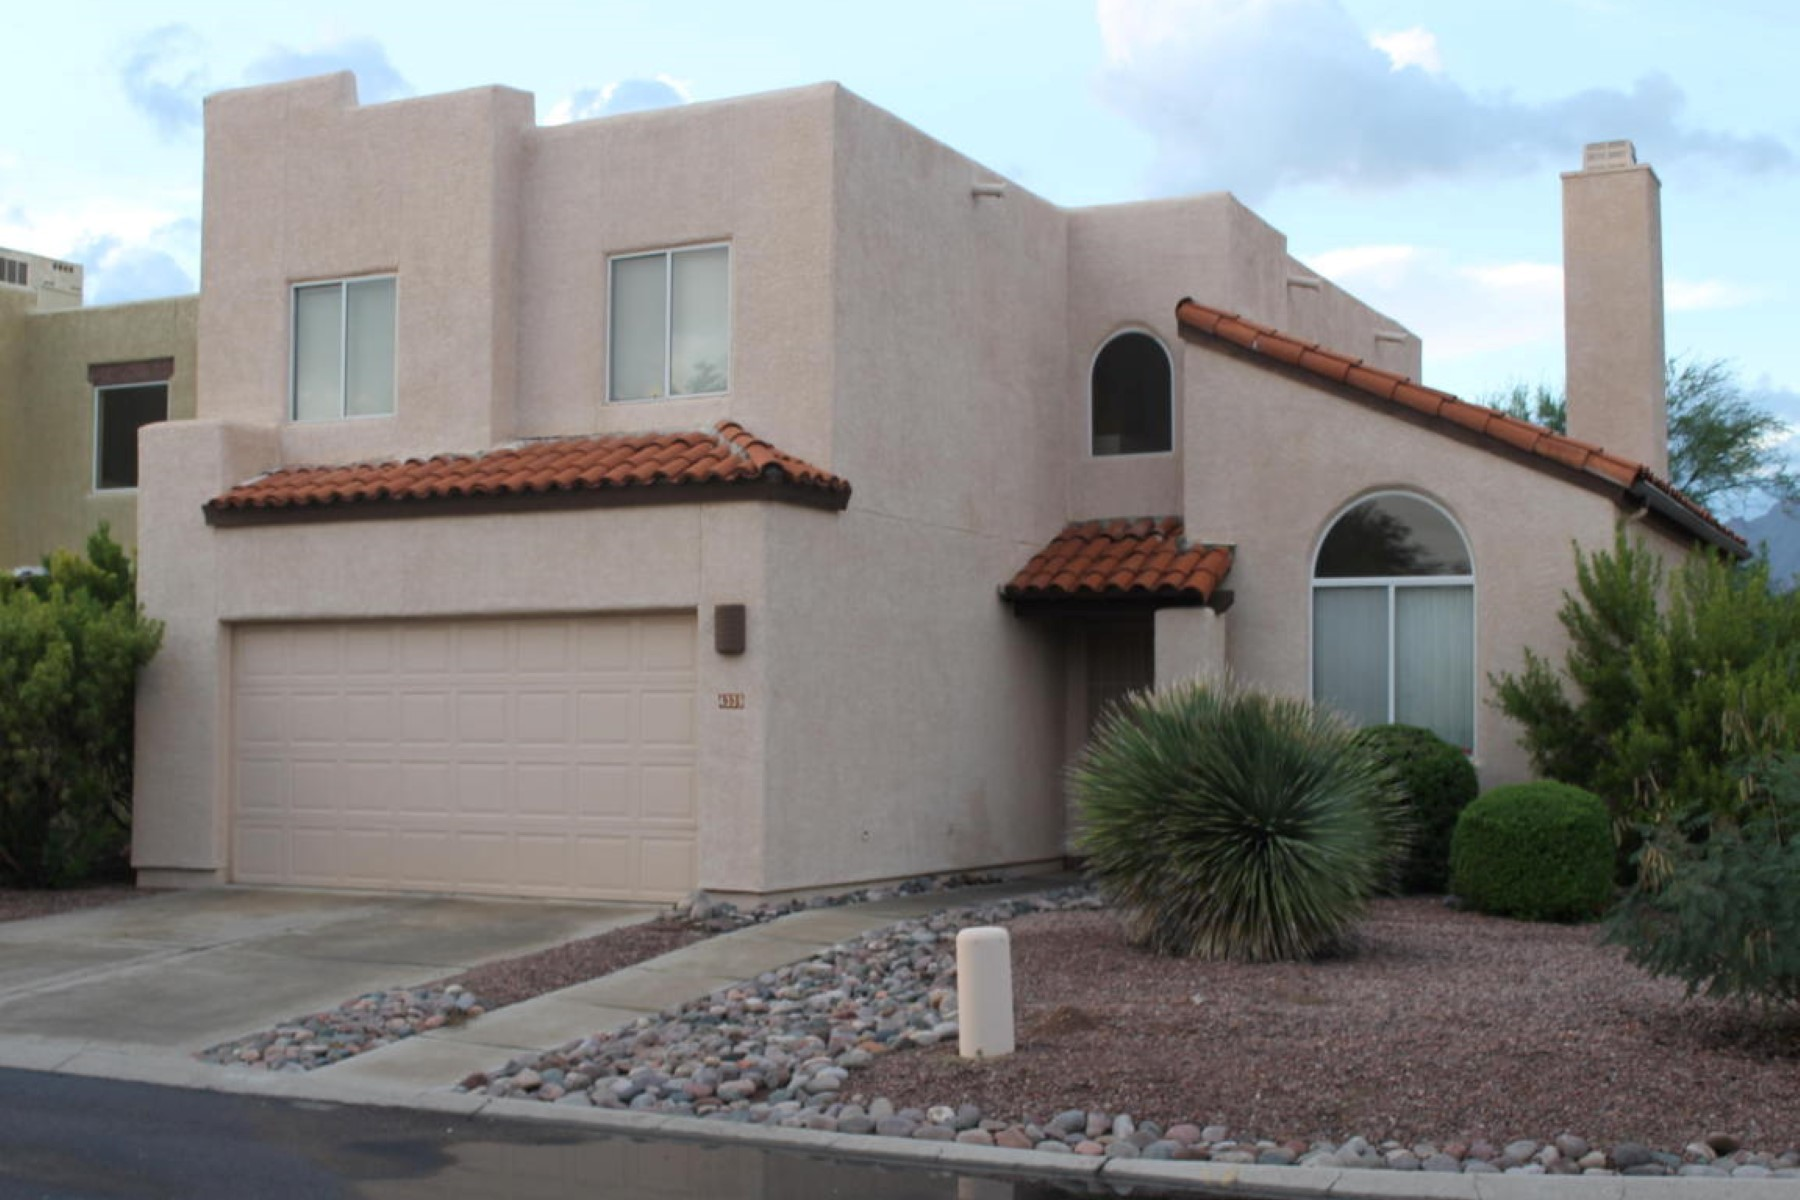 Moradia em banda para Venda às Absolutely stunning this three bedroom 2.5 bath is immaculate condition 4339 E Samantha Drive Tucson, Arizona 85712 Estados Unidos